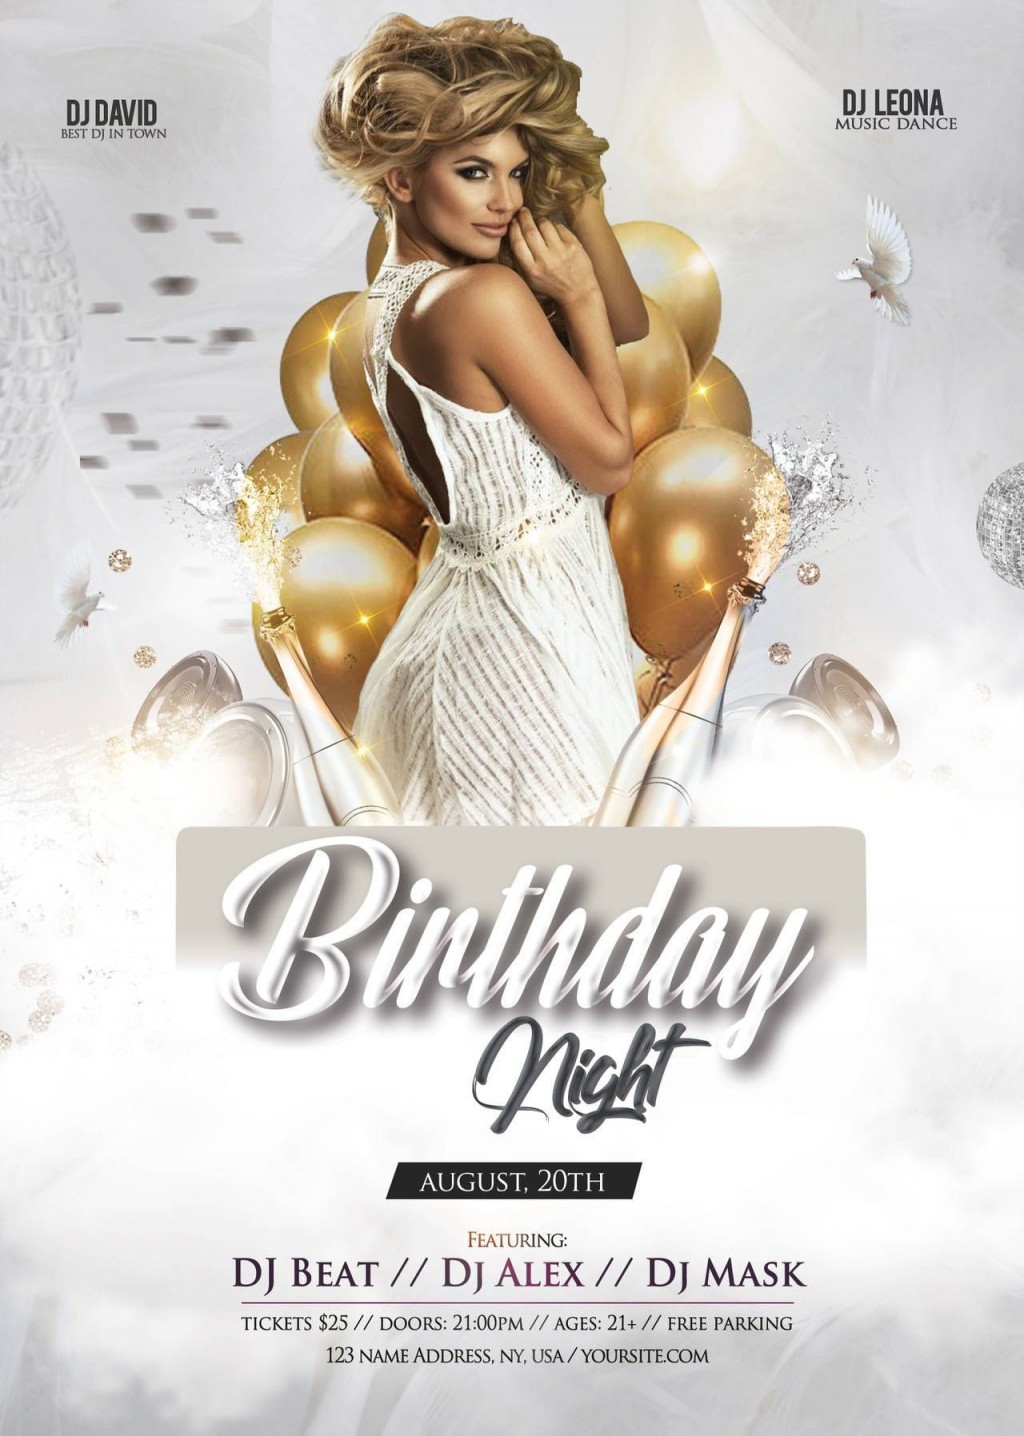 003 Awesome Free Birthday Flyer Template Psd Example  Foam Party - Neon Glow Download PoolLarge